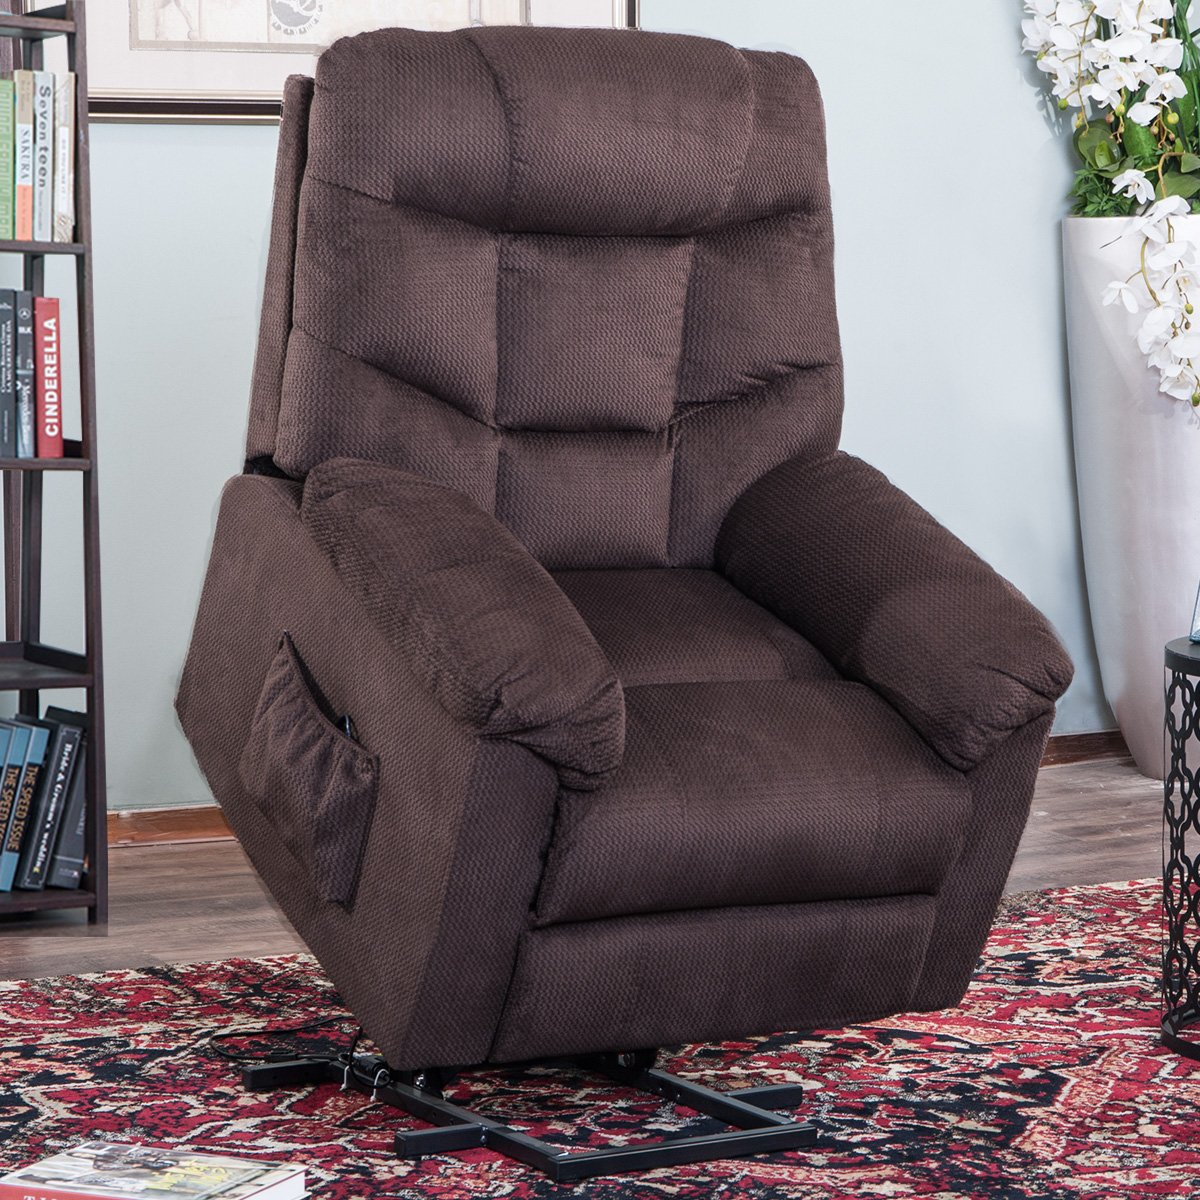 Harper & Bright Designs Electric Power Lift Recliner Lifting Chair for the Elderly, Multiple Colors